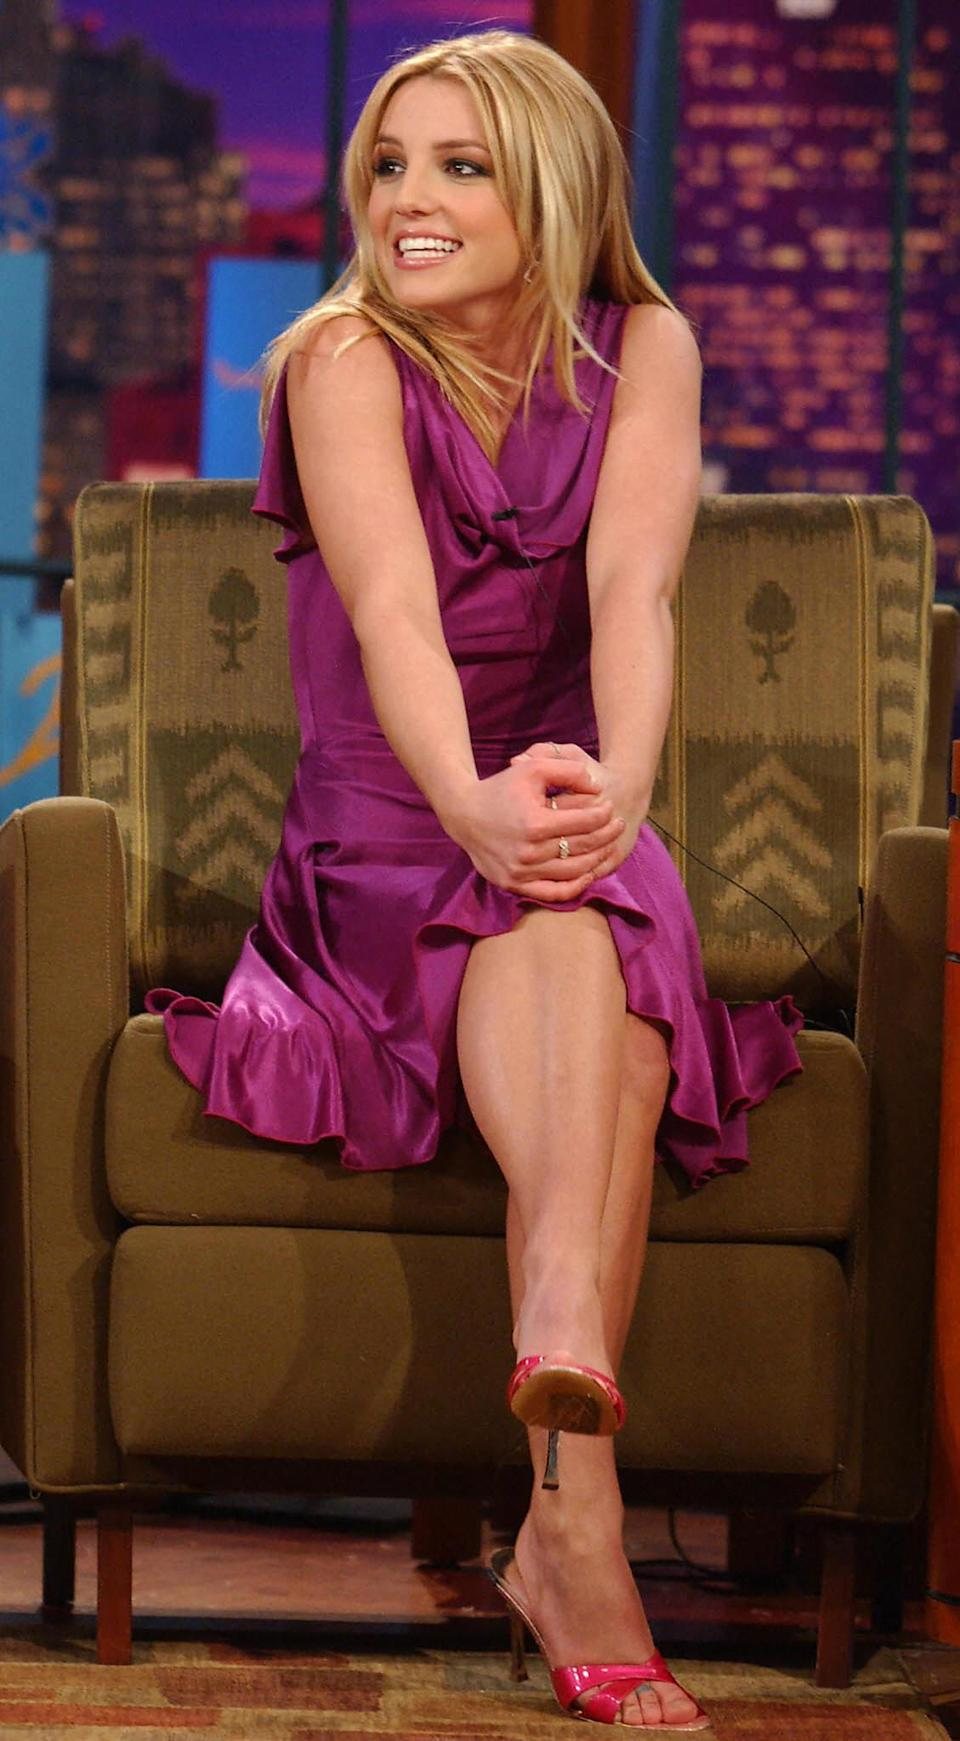 Britney smiling while appearing on a late night talk show